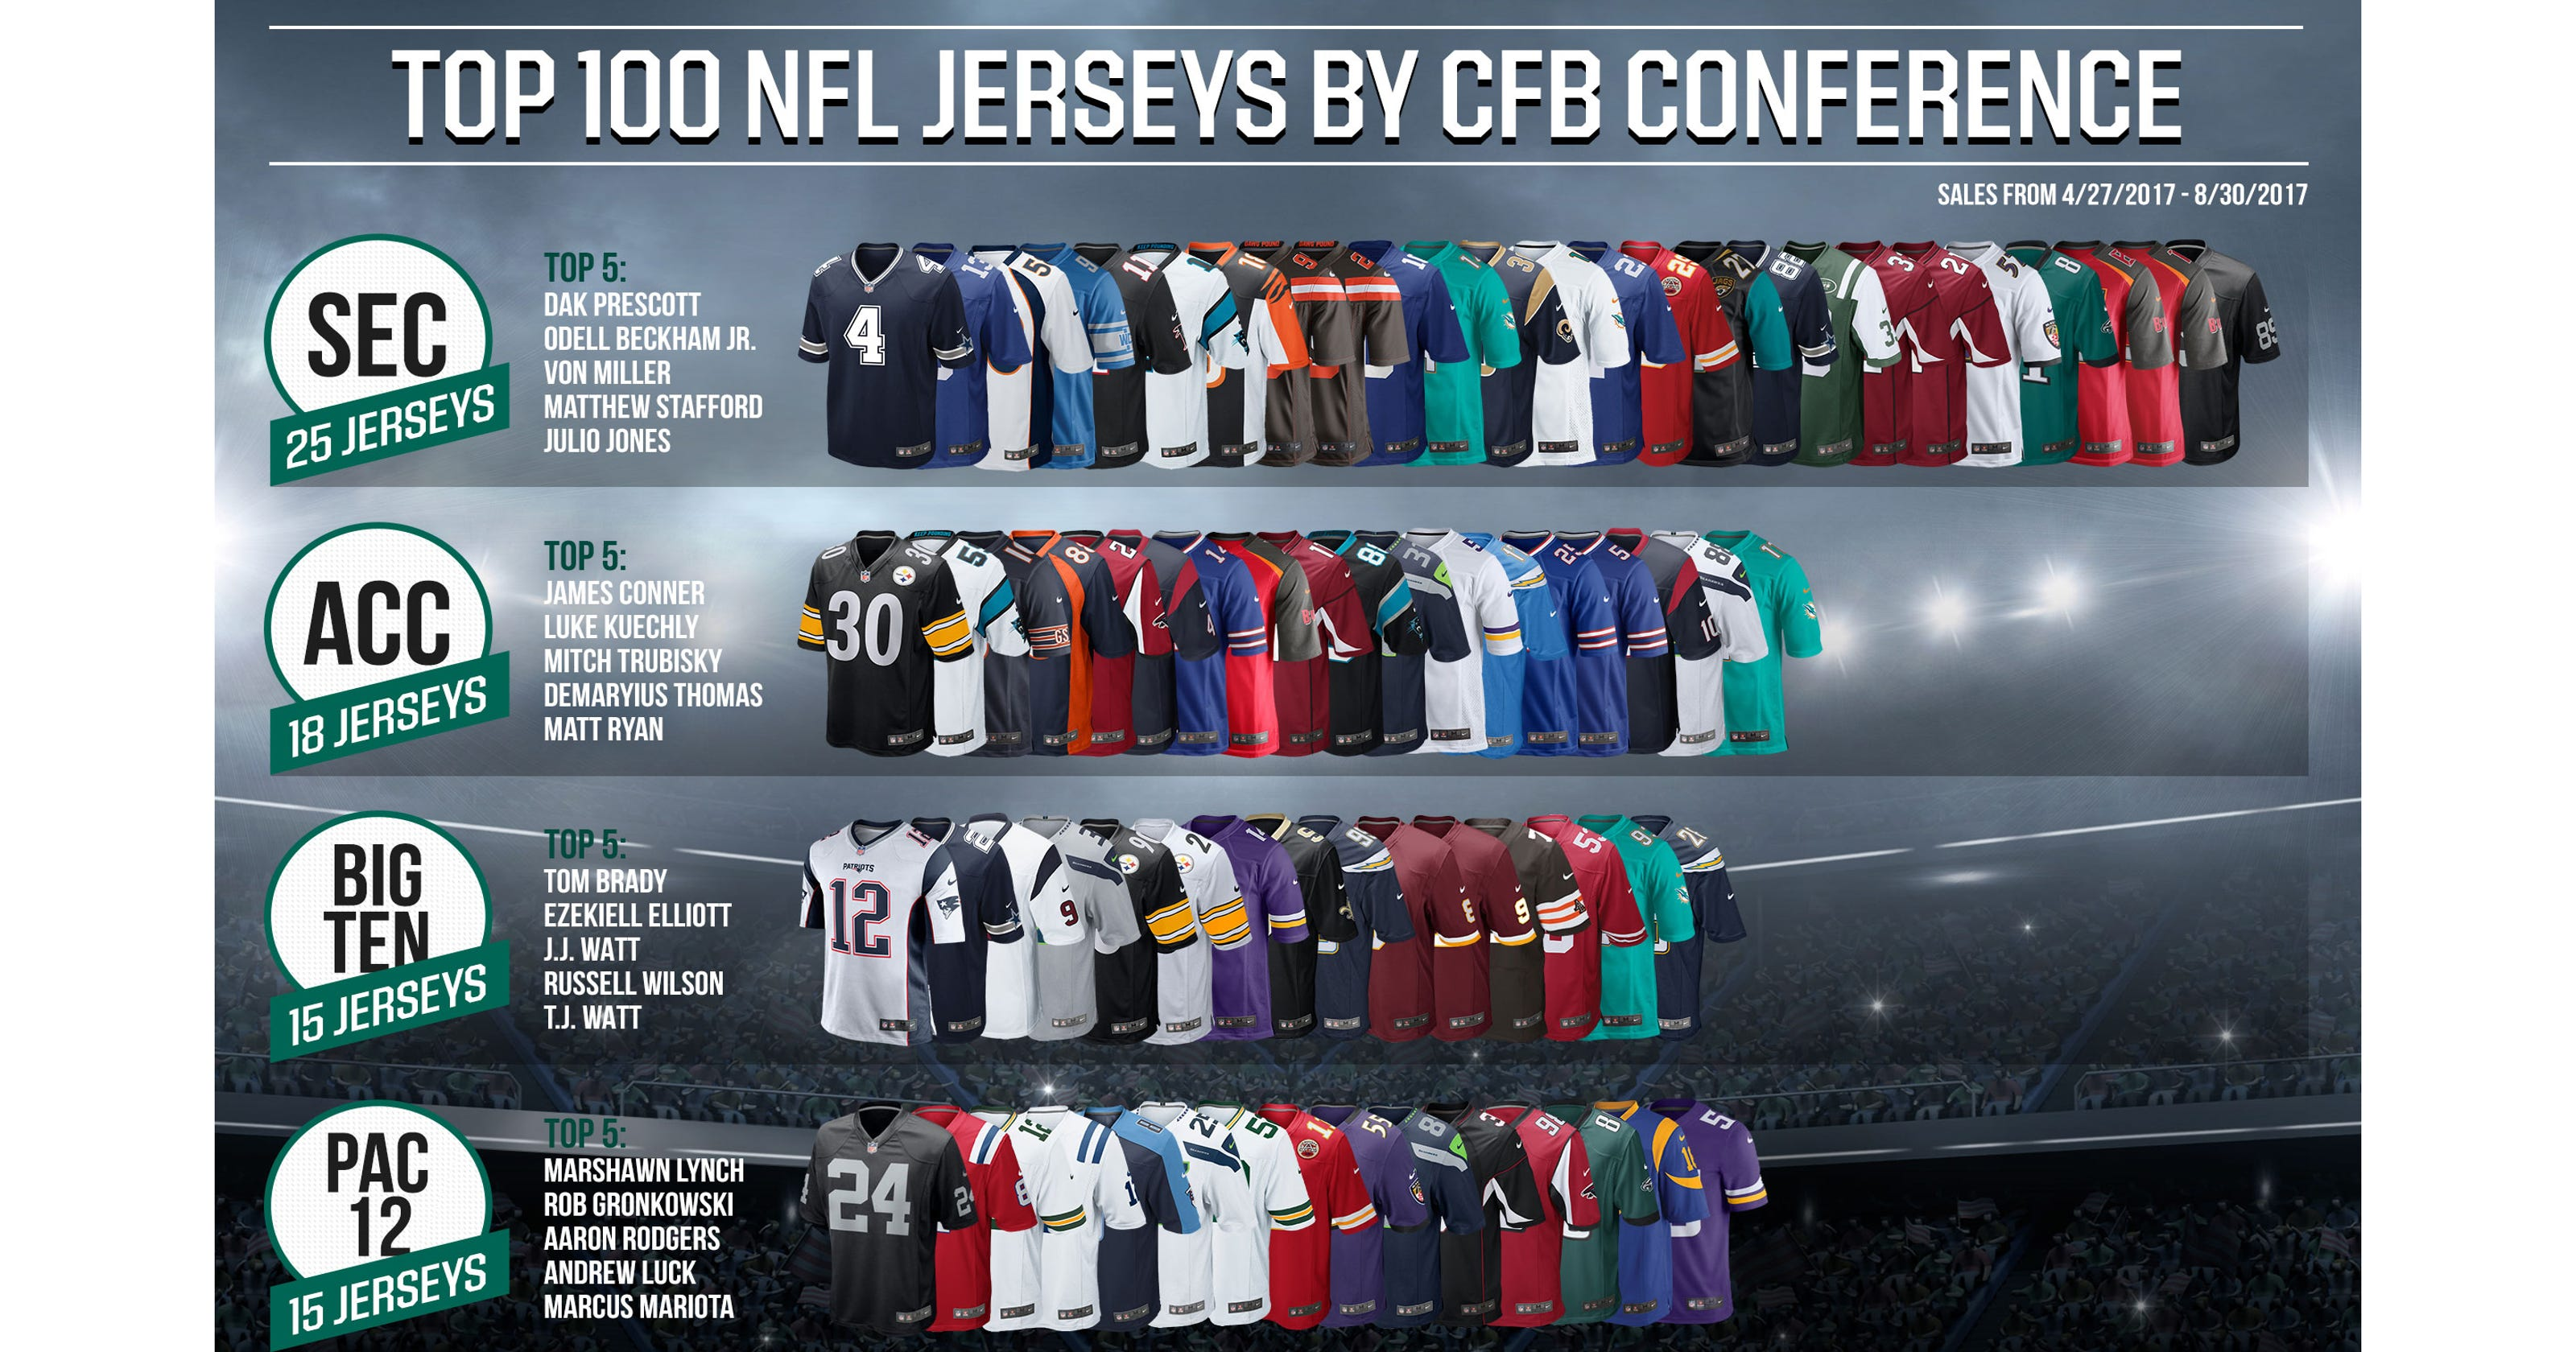 ACC ranks second in NFL jersey sales